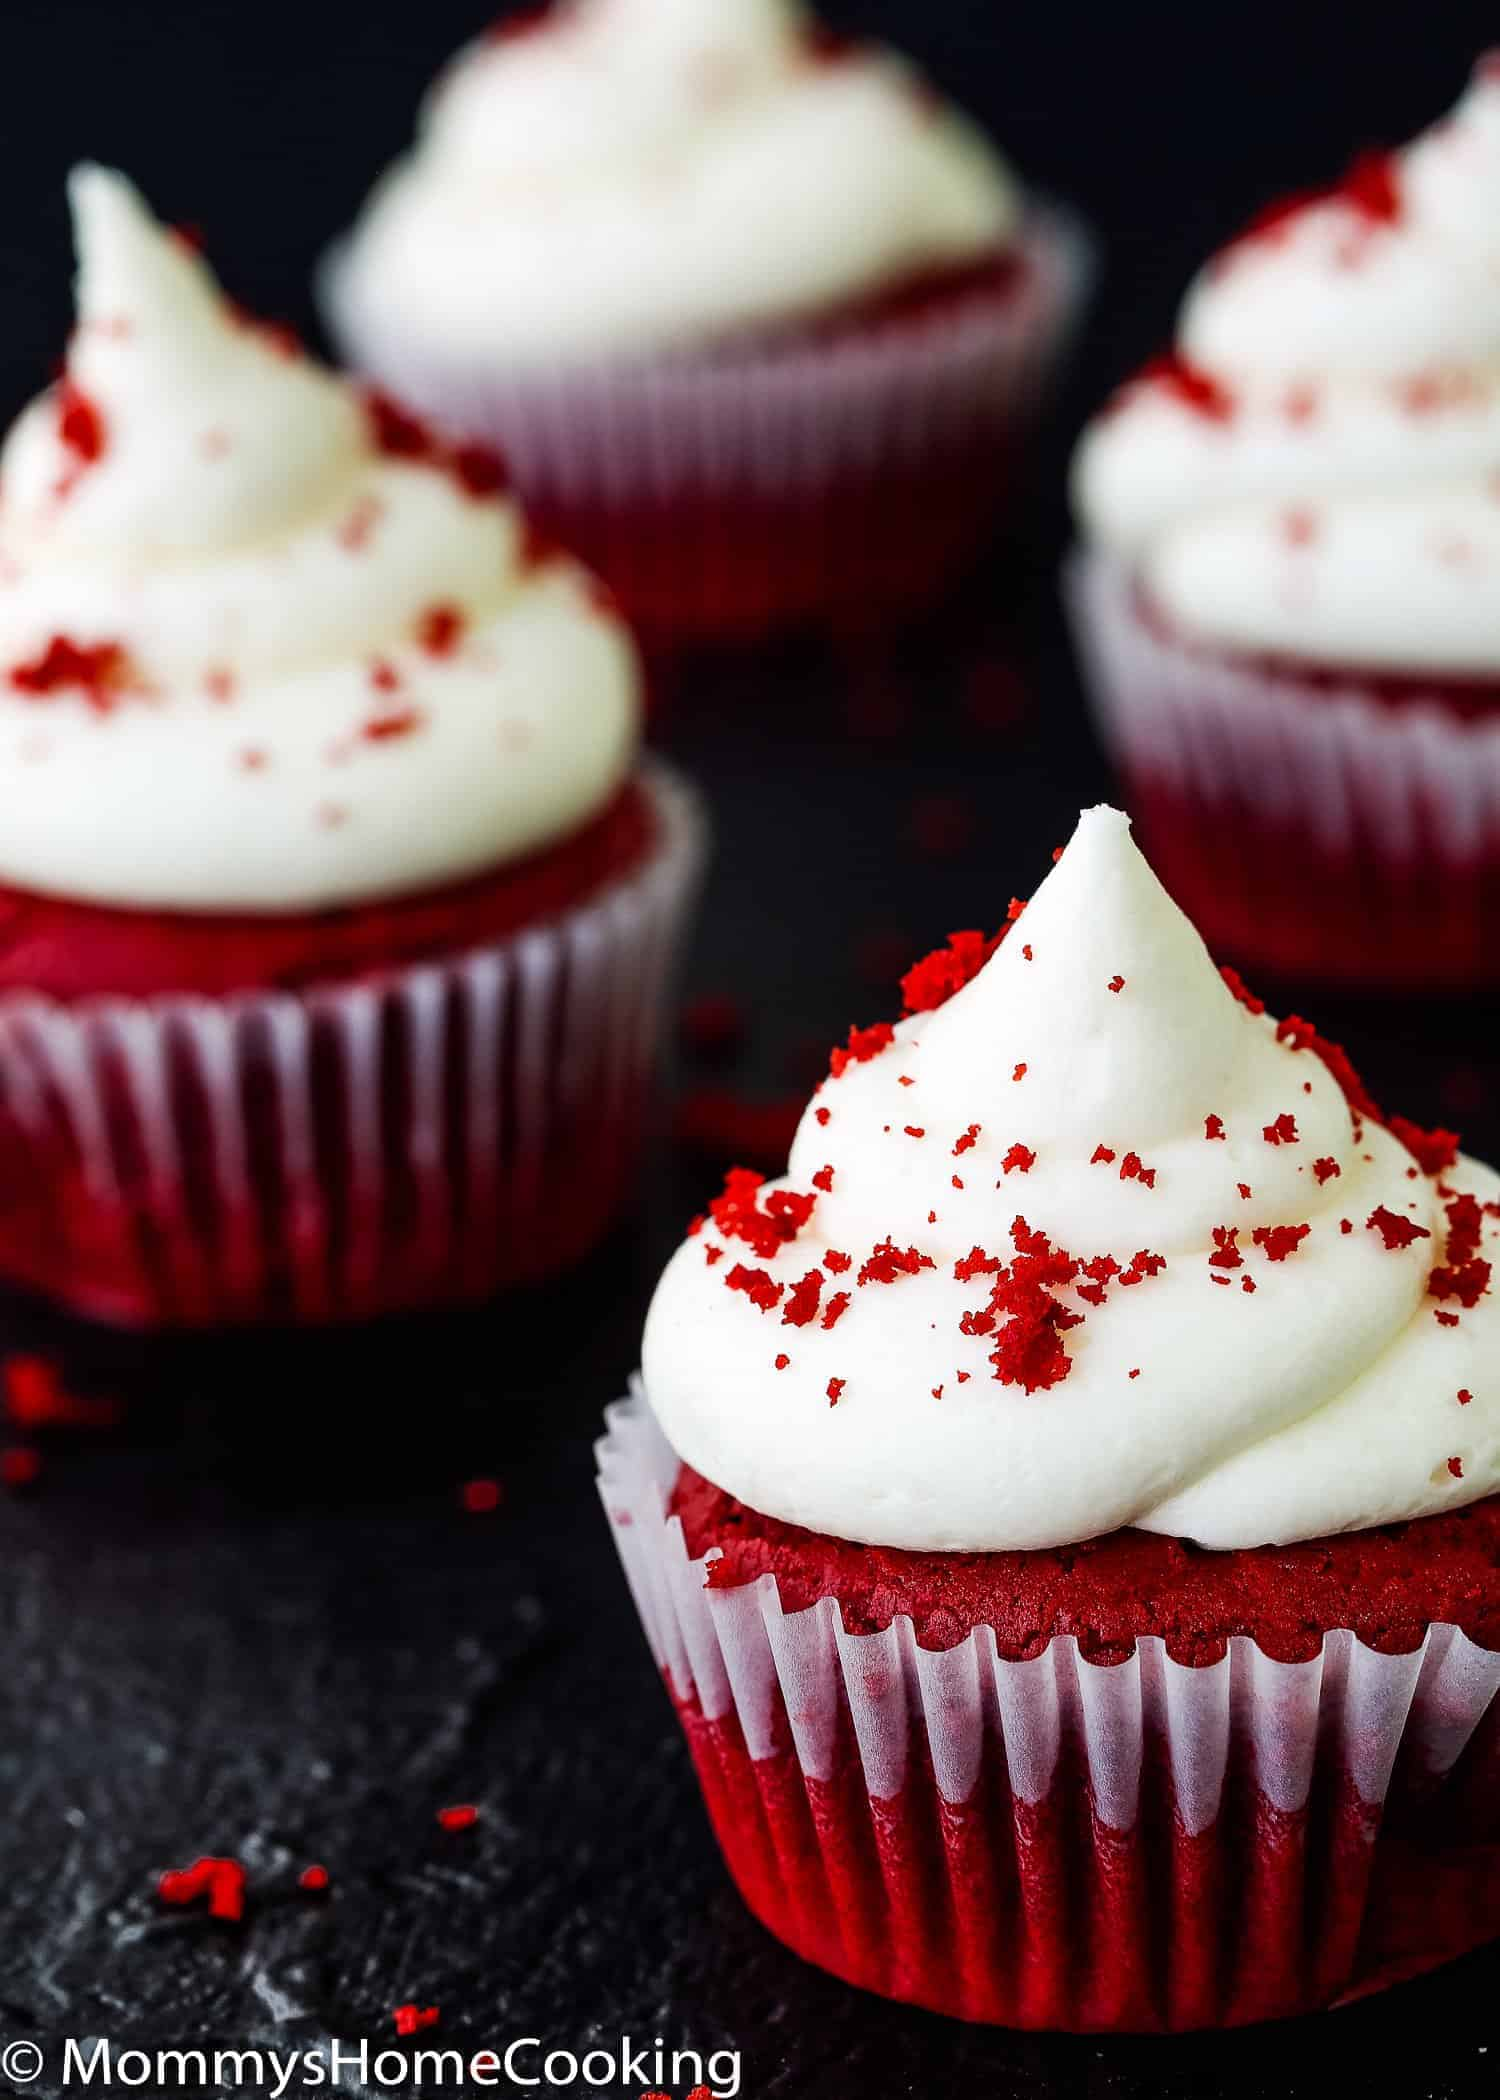 These Easy Eggless Red Velvet Cupcakes are tender, light, moist and delicious all at once!! They are super easy to whip up for your next get-together. Perfect for crowded birthday parties and school celebrations. https://mommyshomecooking.com